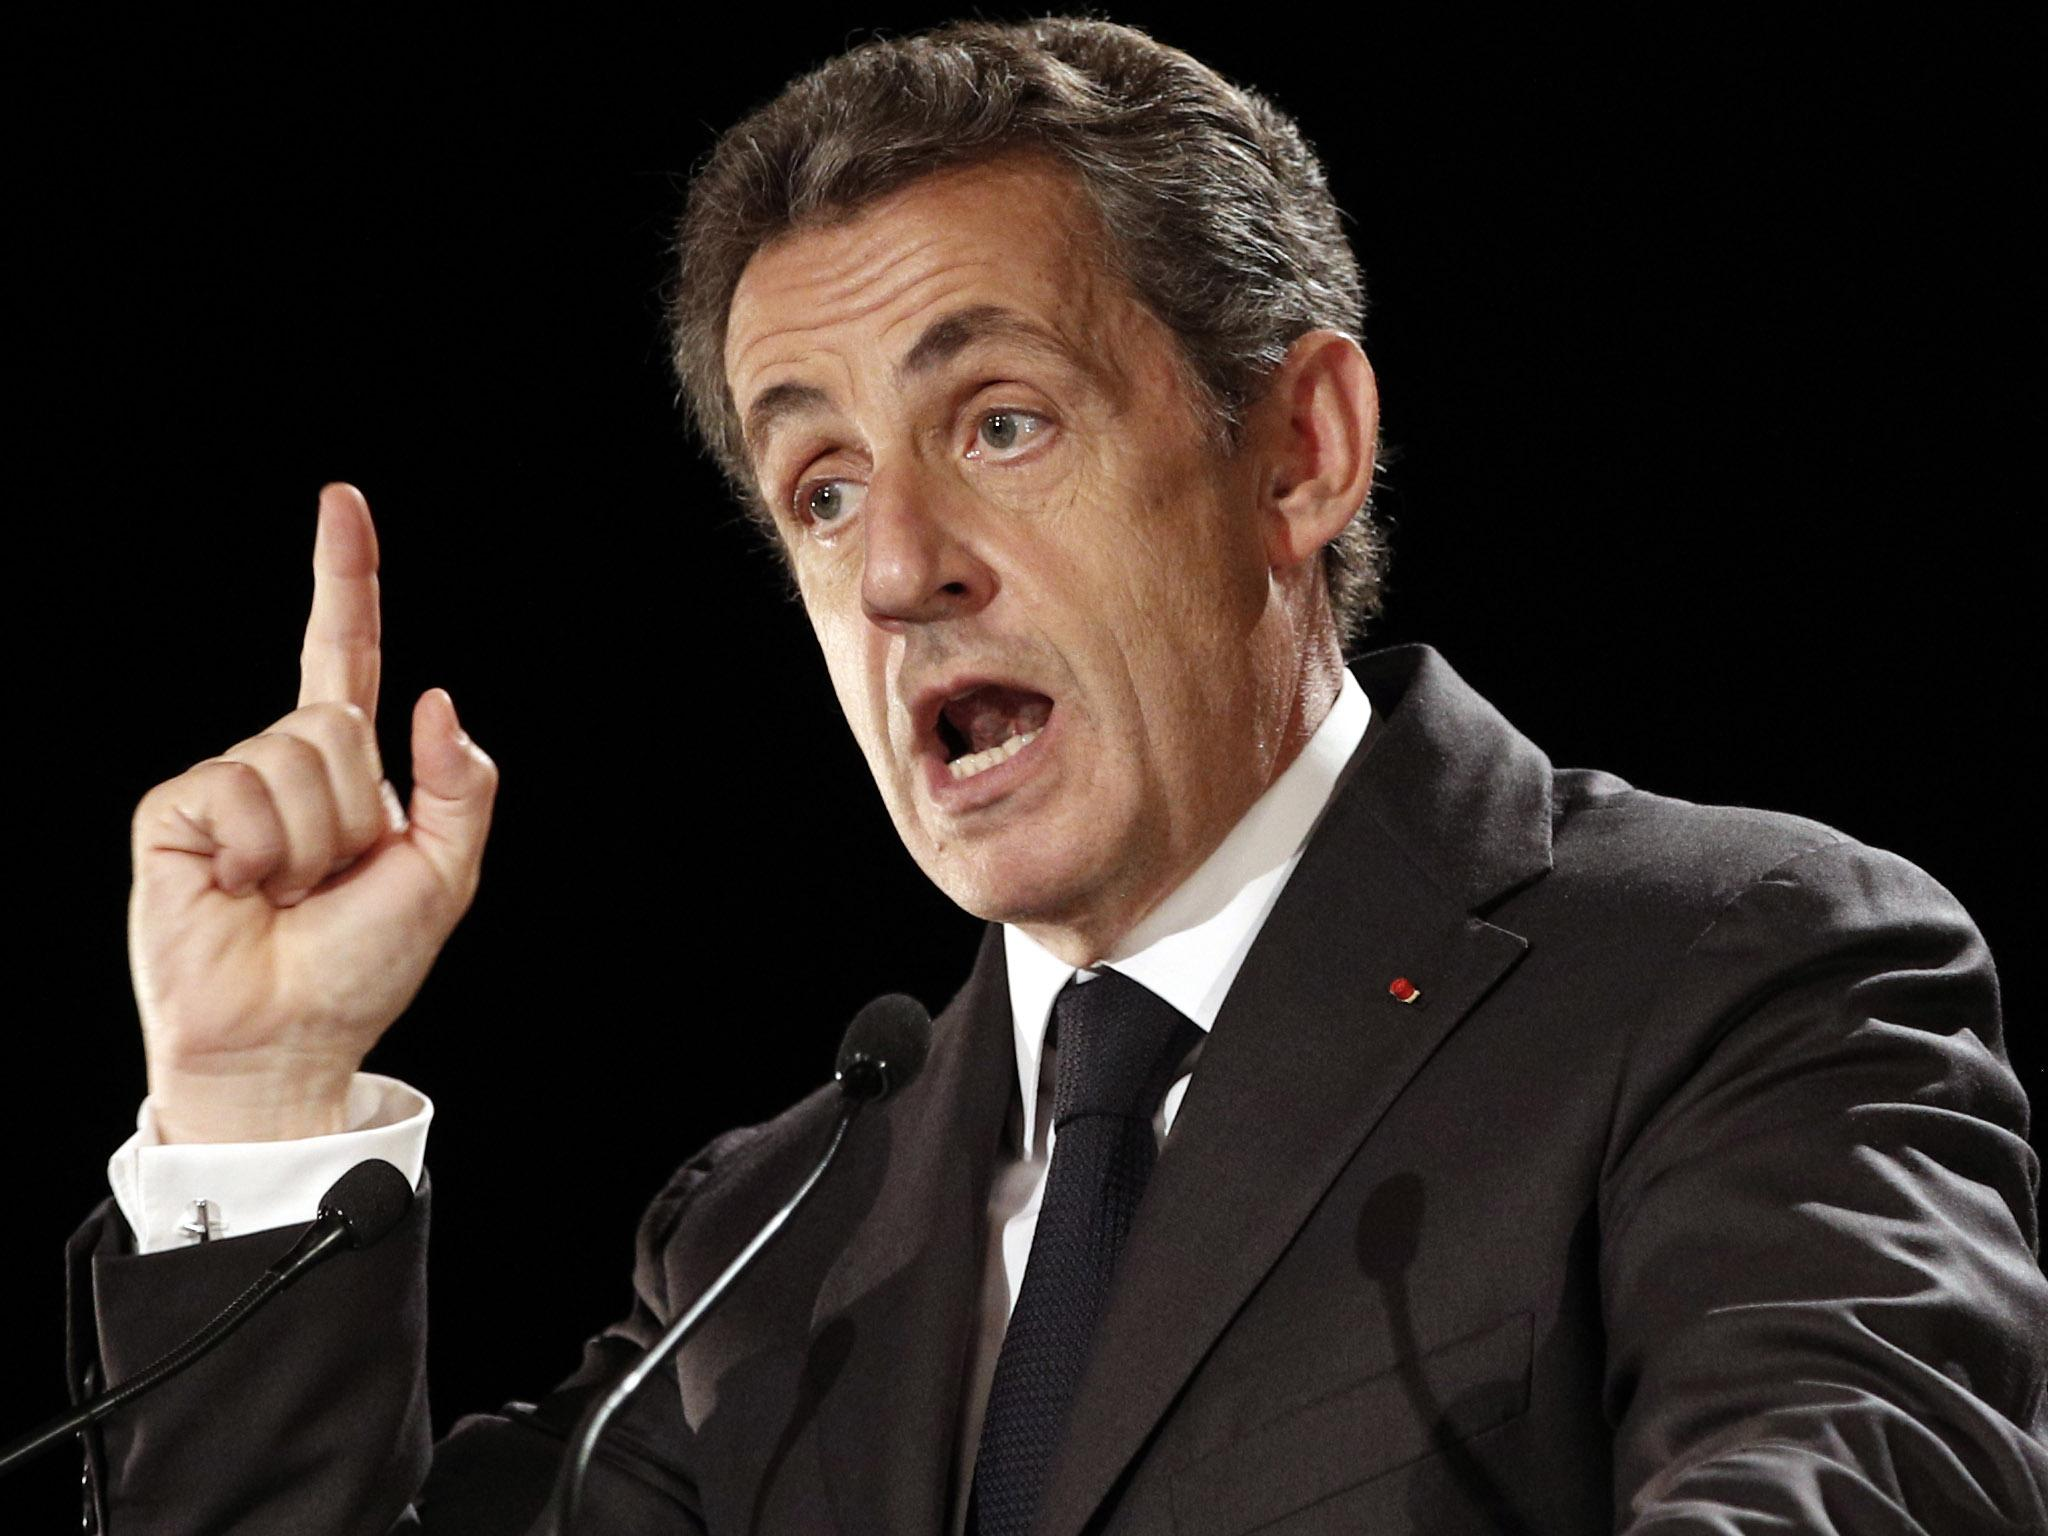 sarkozy - photo #47